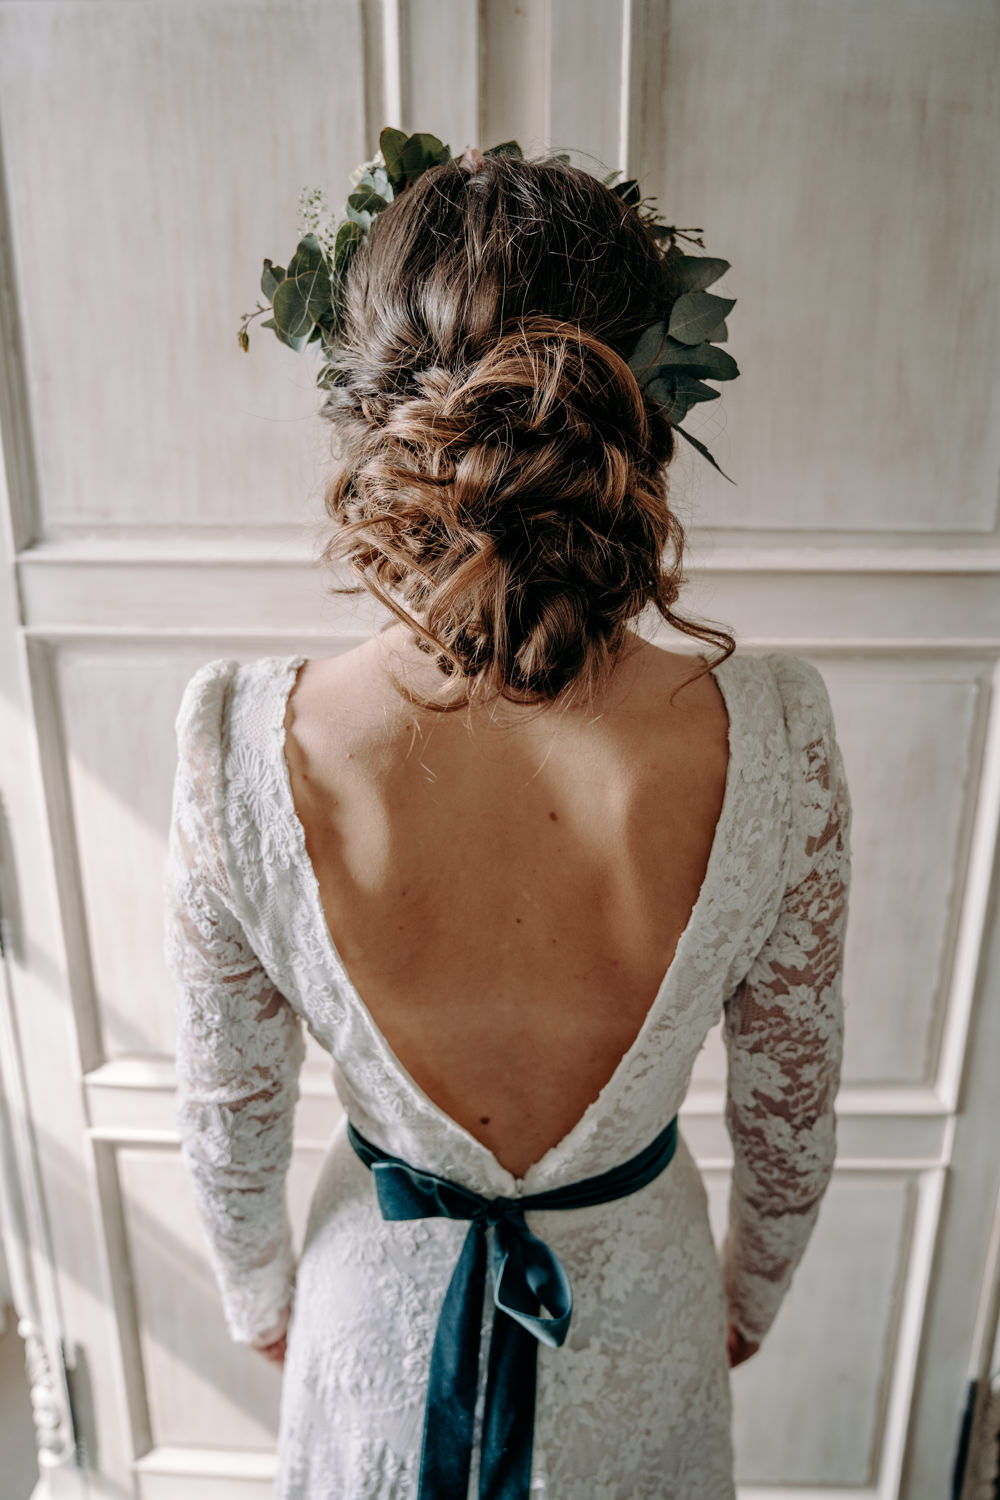 Bride Bridal Hair Style Up Do Bun Free Spirited Wedding Ideas EKR Pictures